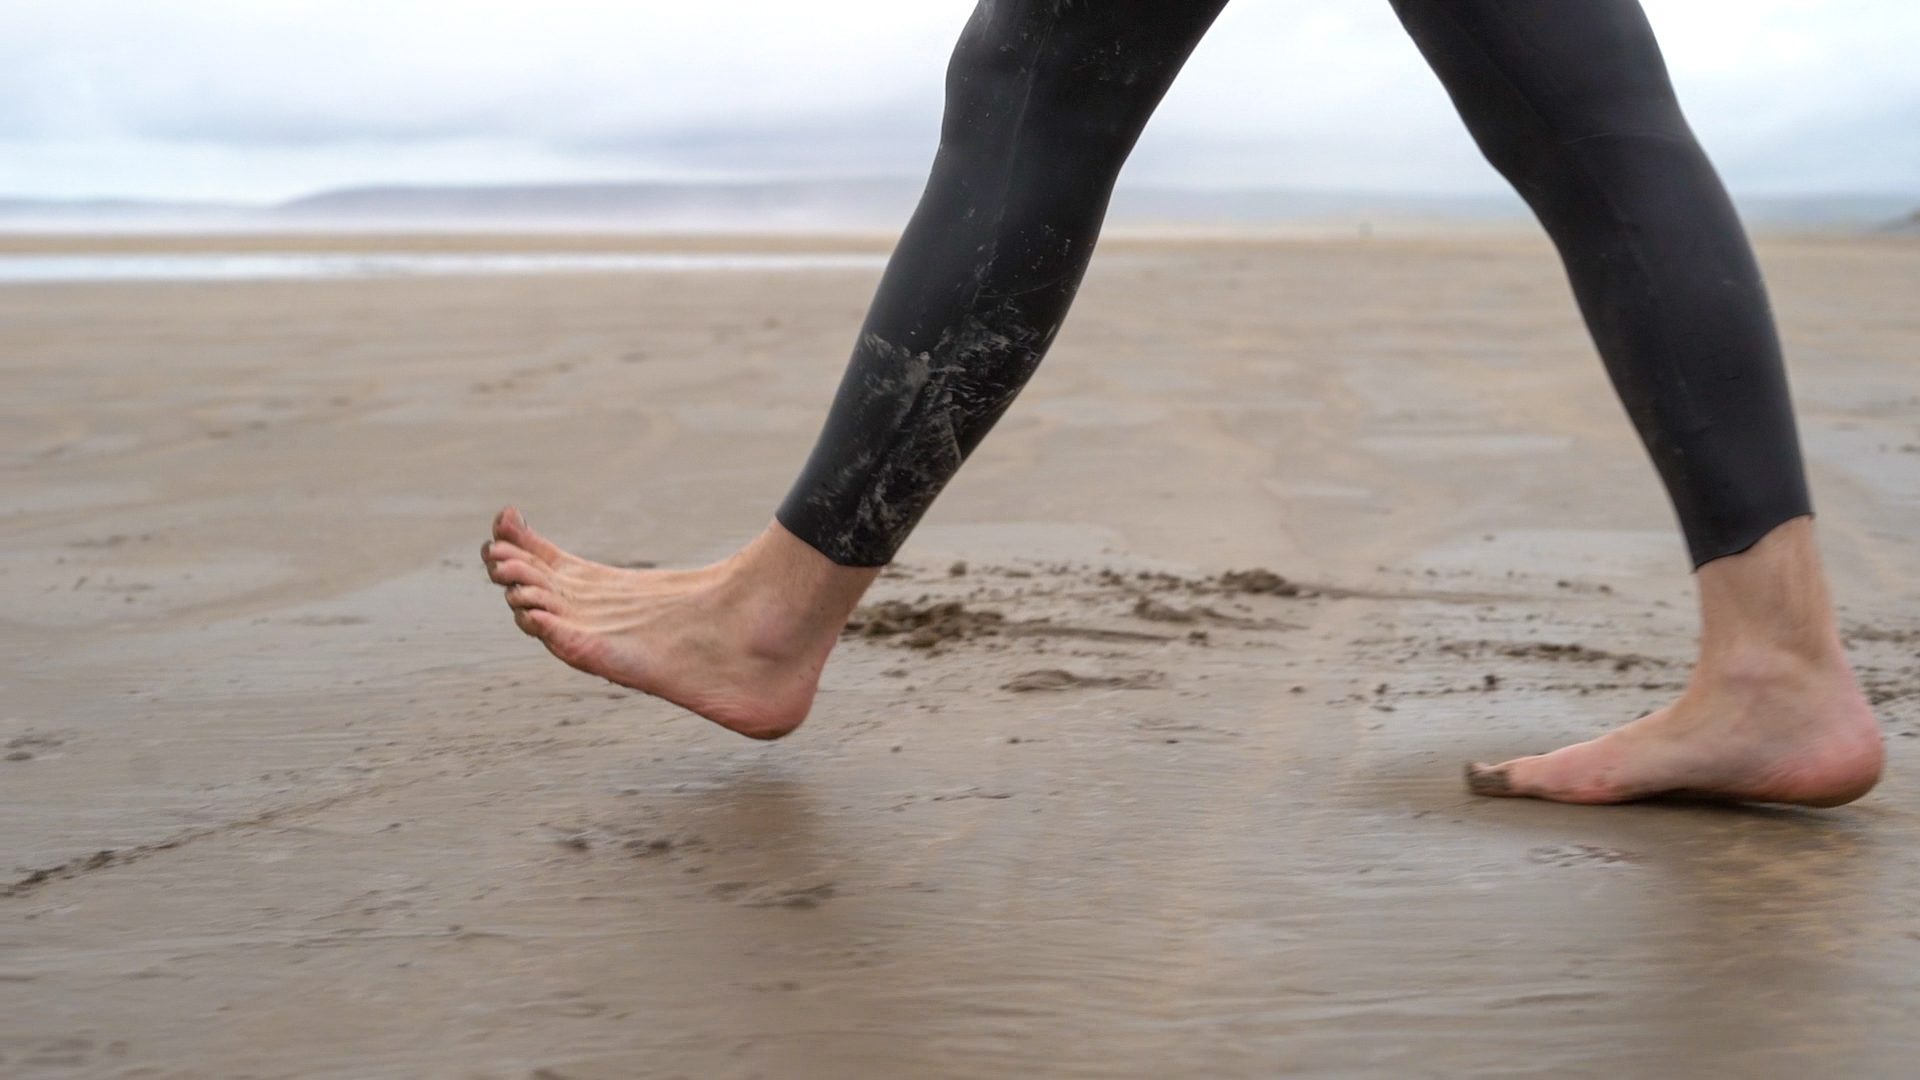 1 in 5 people will suffer with foot or ankle pain